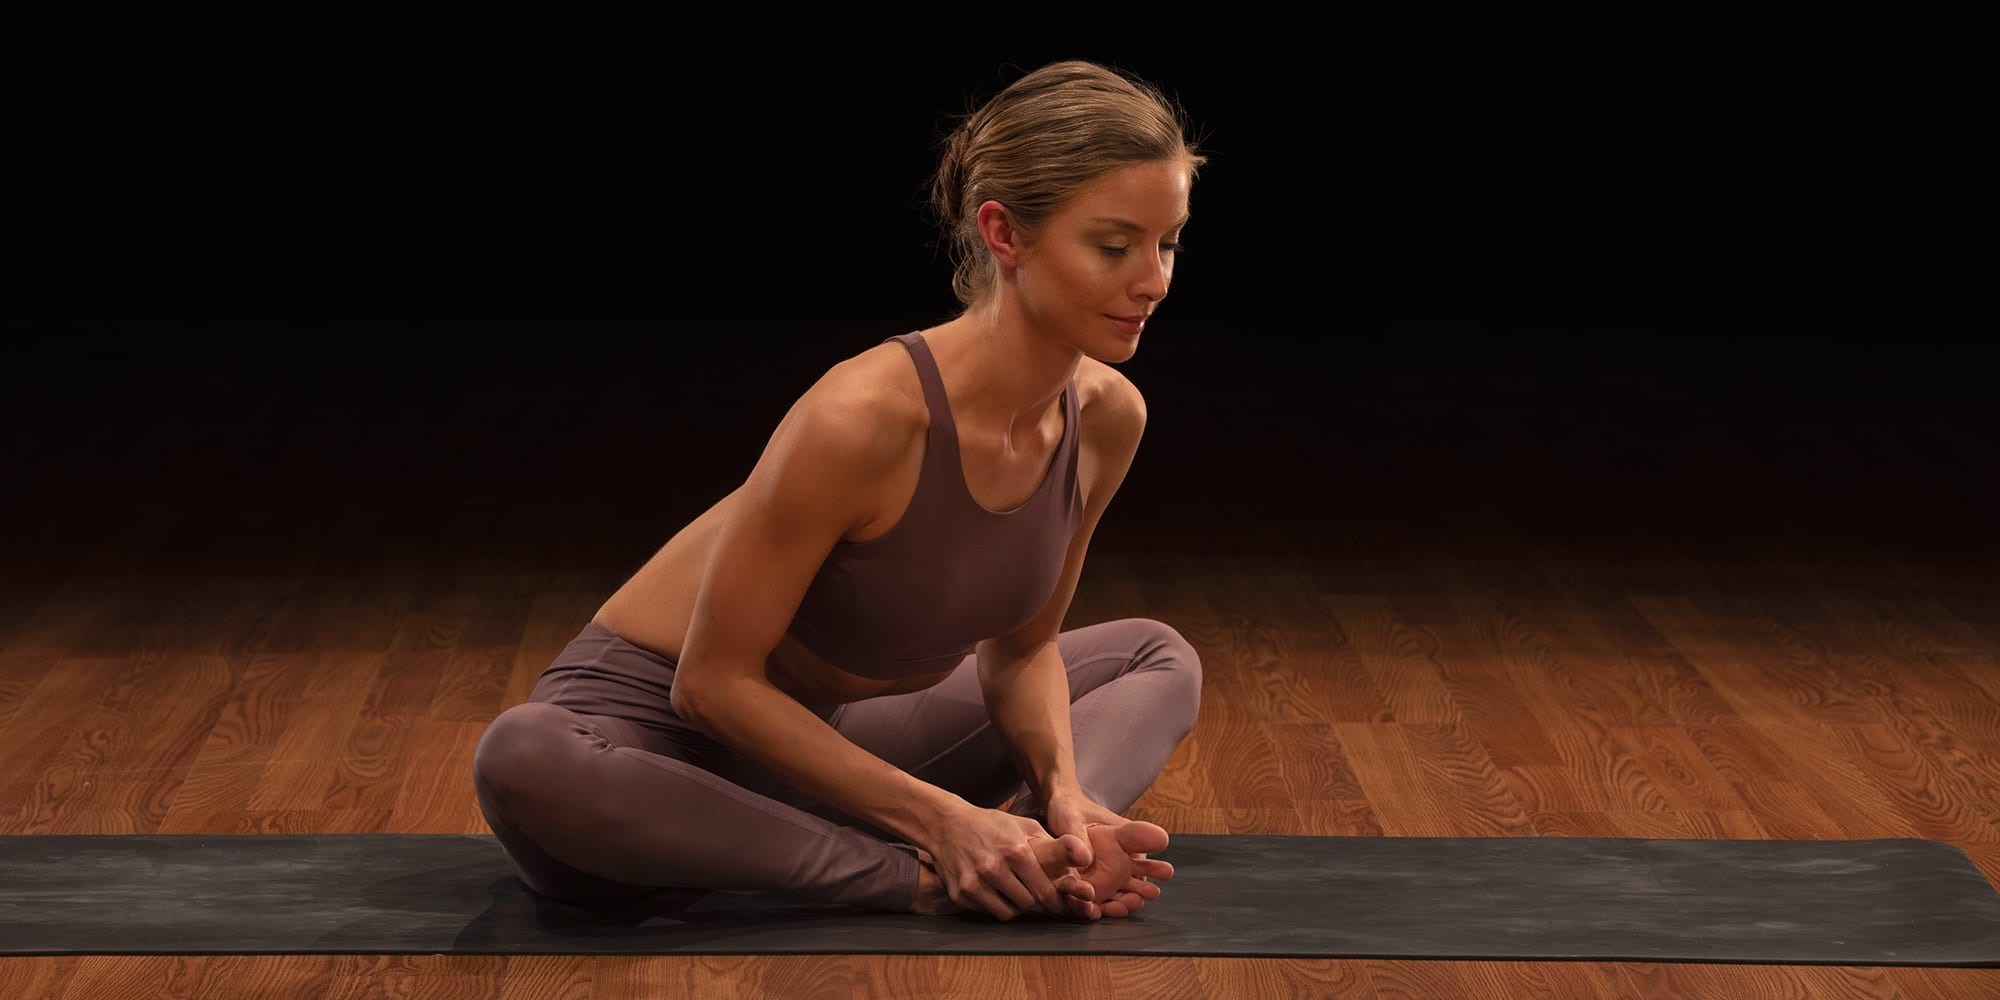 Feel Great with These Full Body Stretches